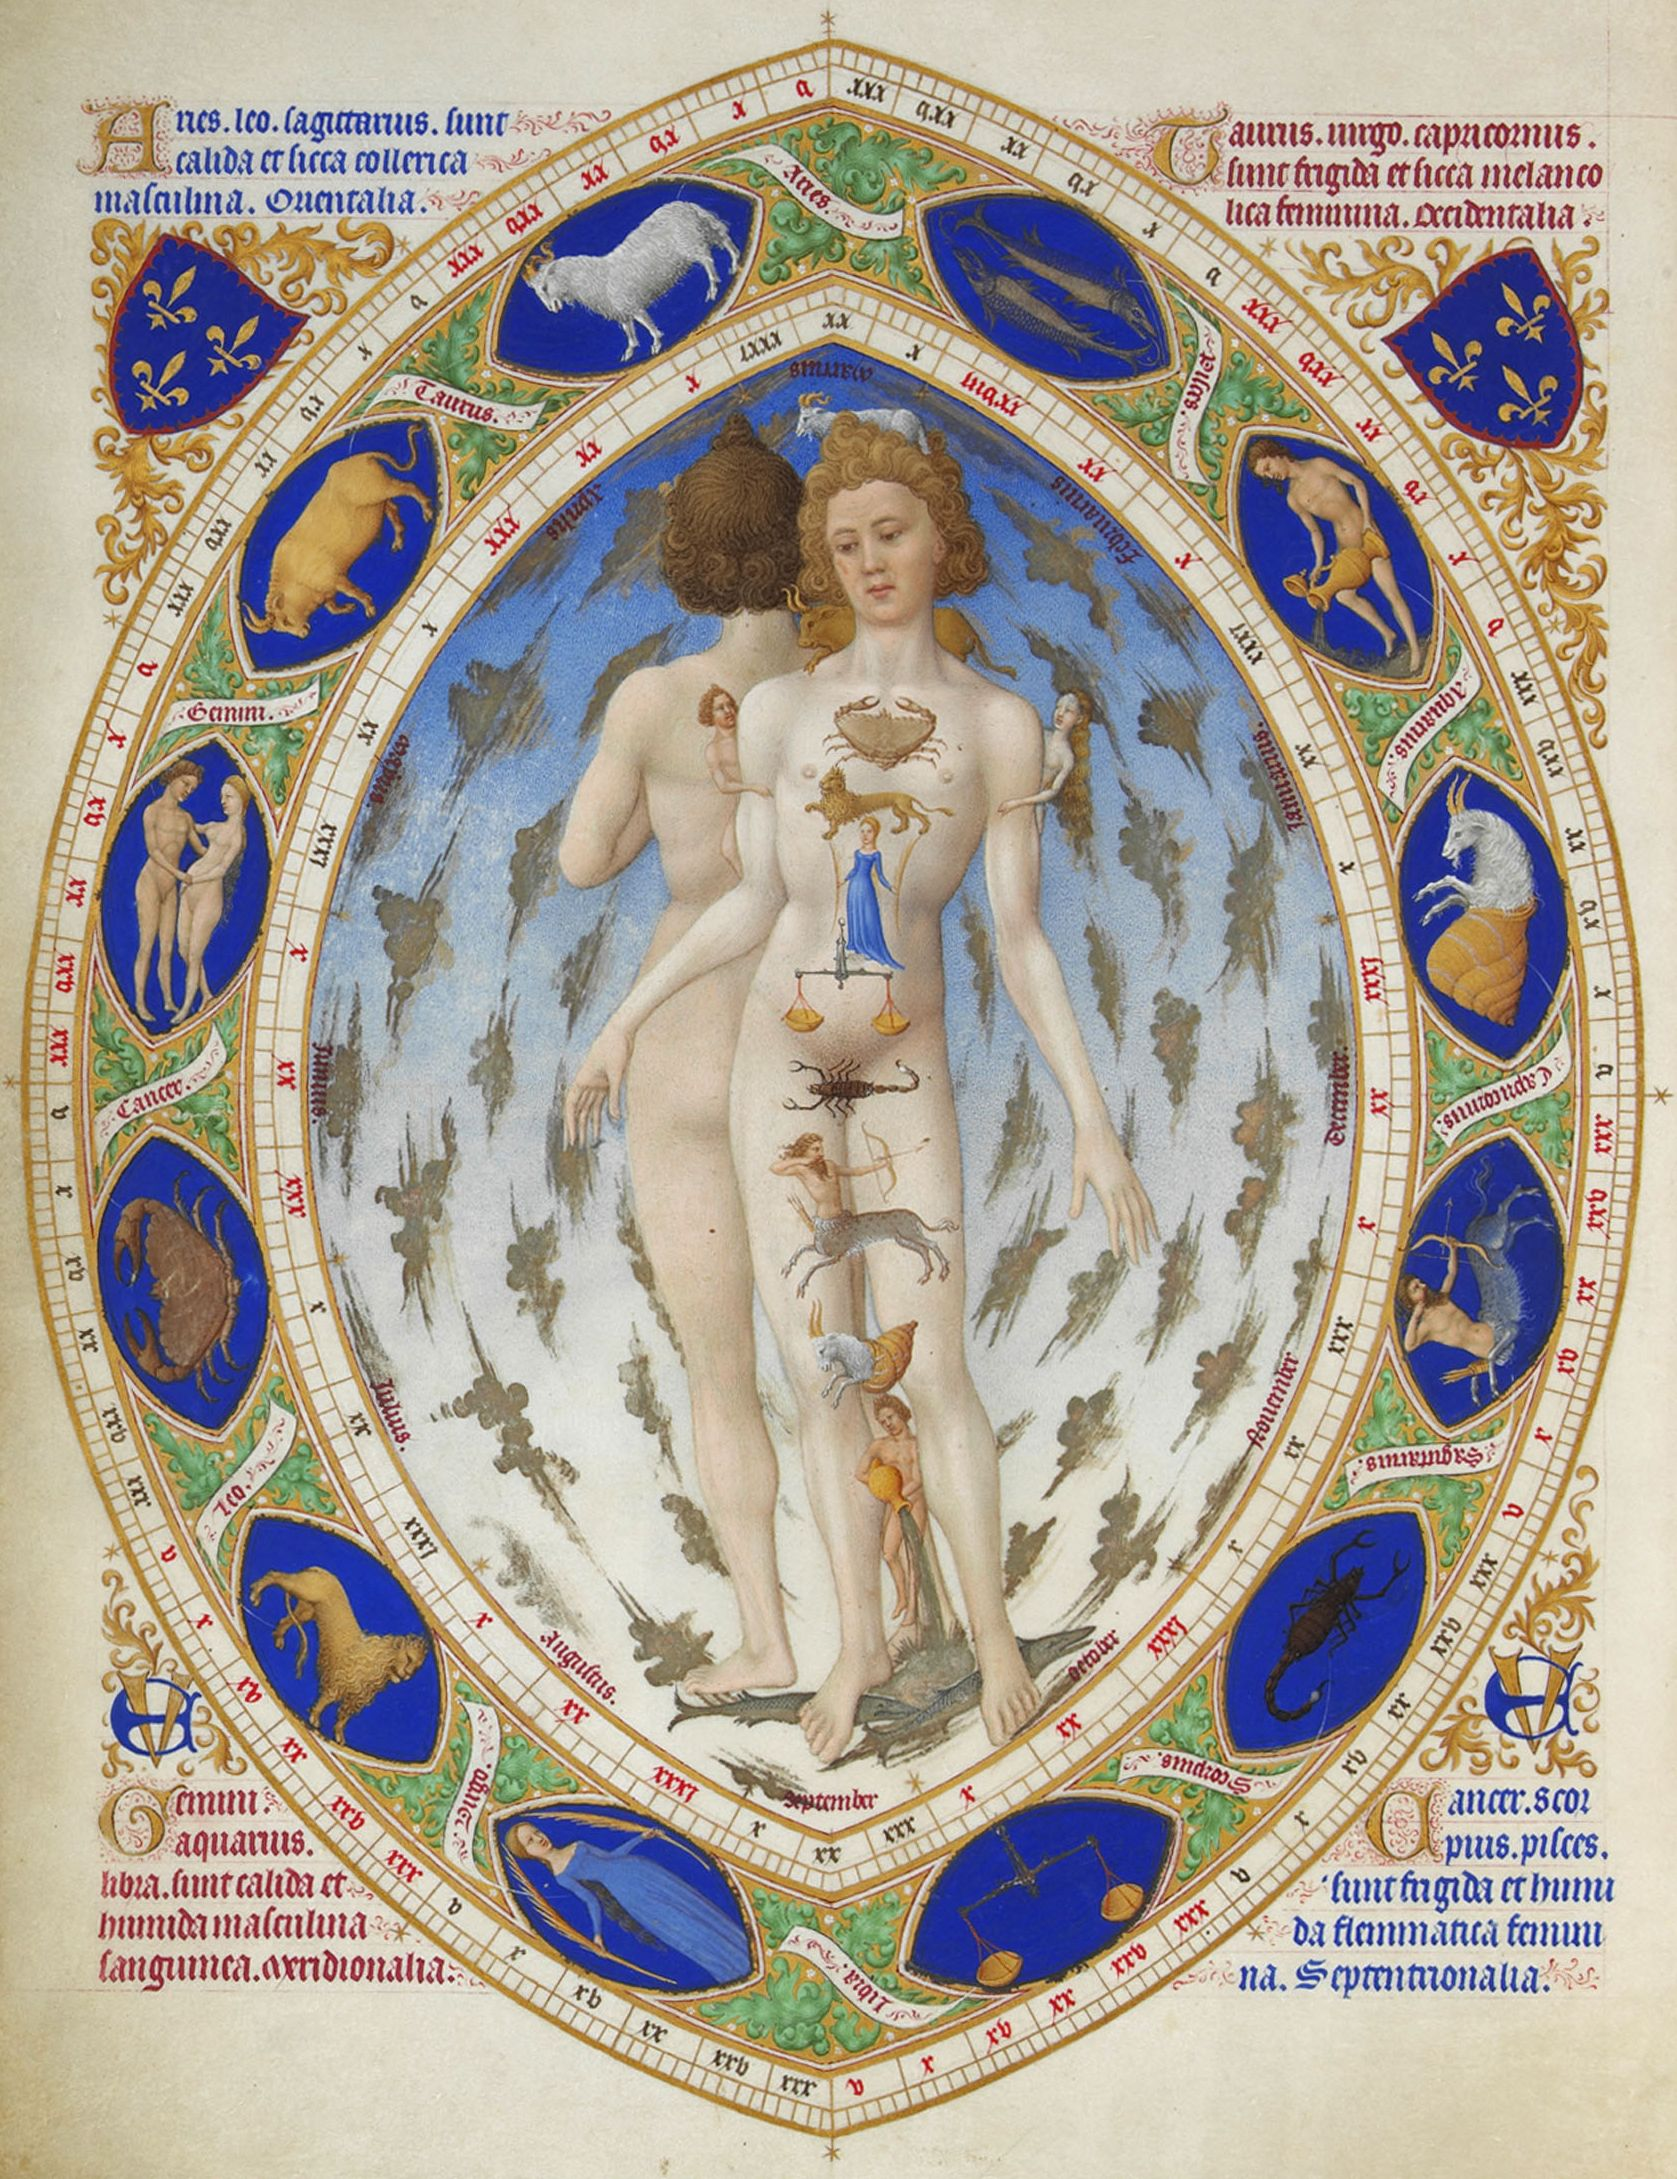 An image of an astrological chart mixed with male anatomy.